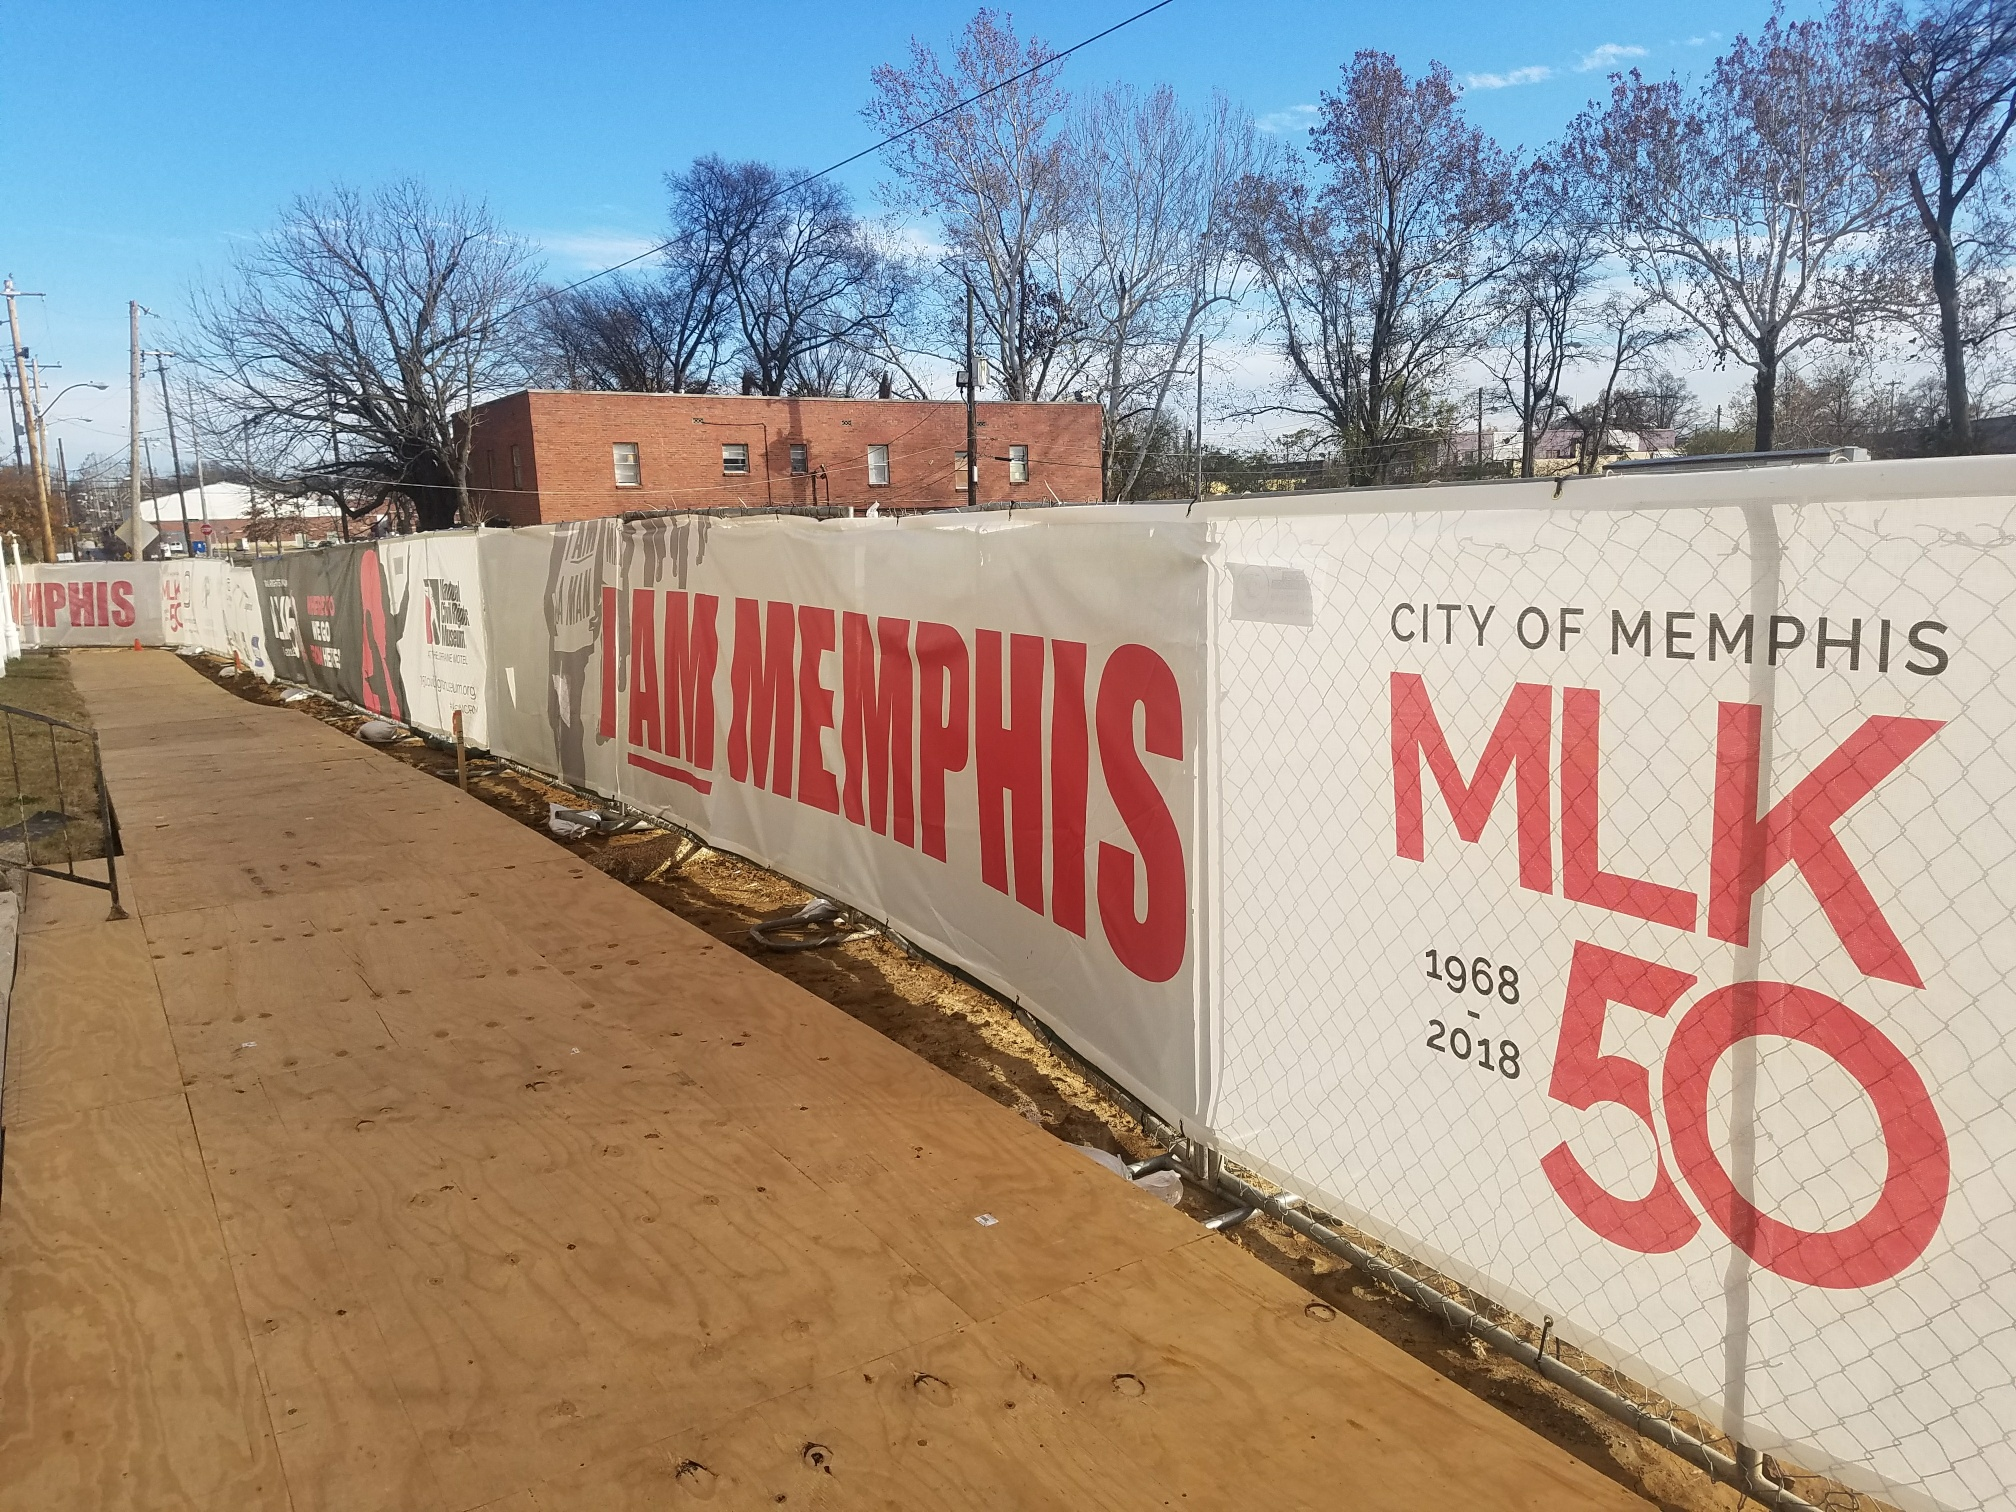 Martin-Luther-King-50Year-Memorial_Fence-Mesh-Banner_LSIGraphics_Memphis-TN ..